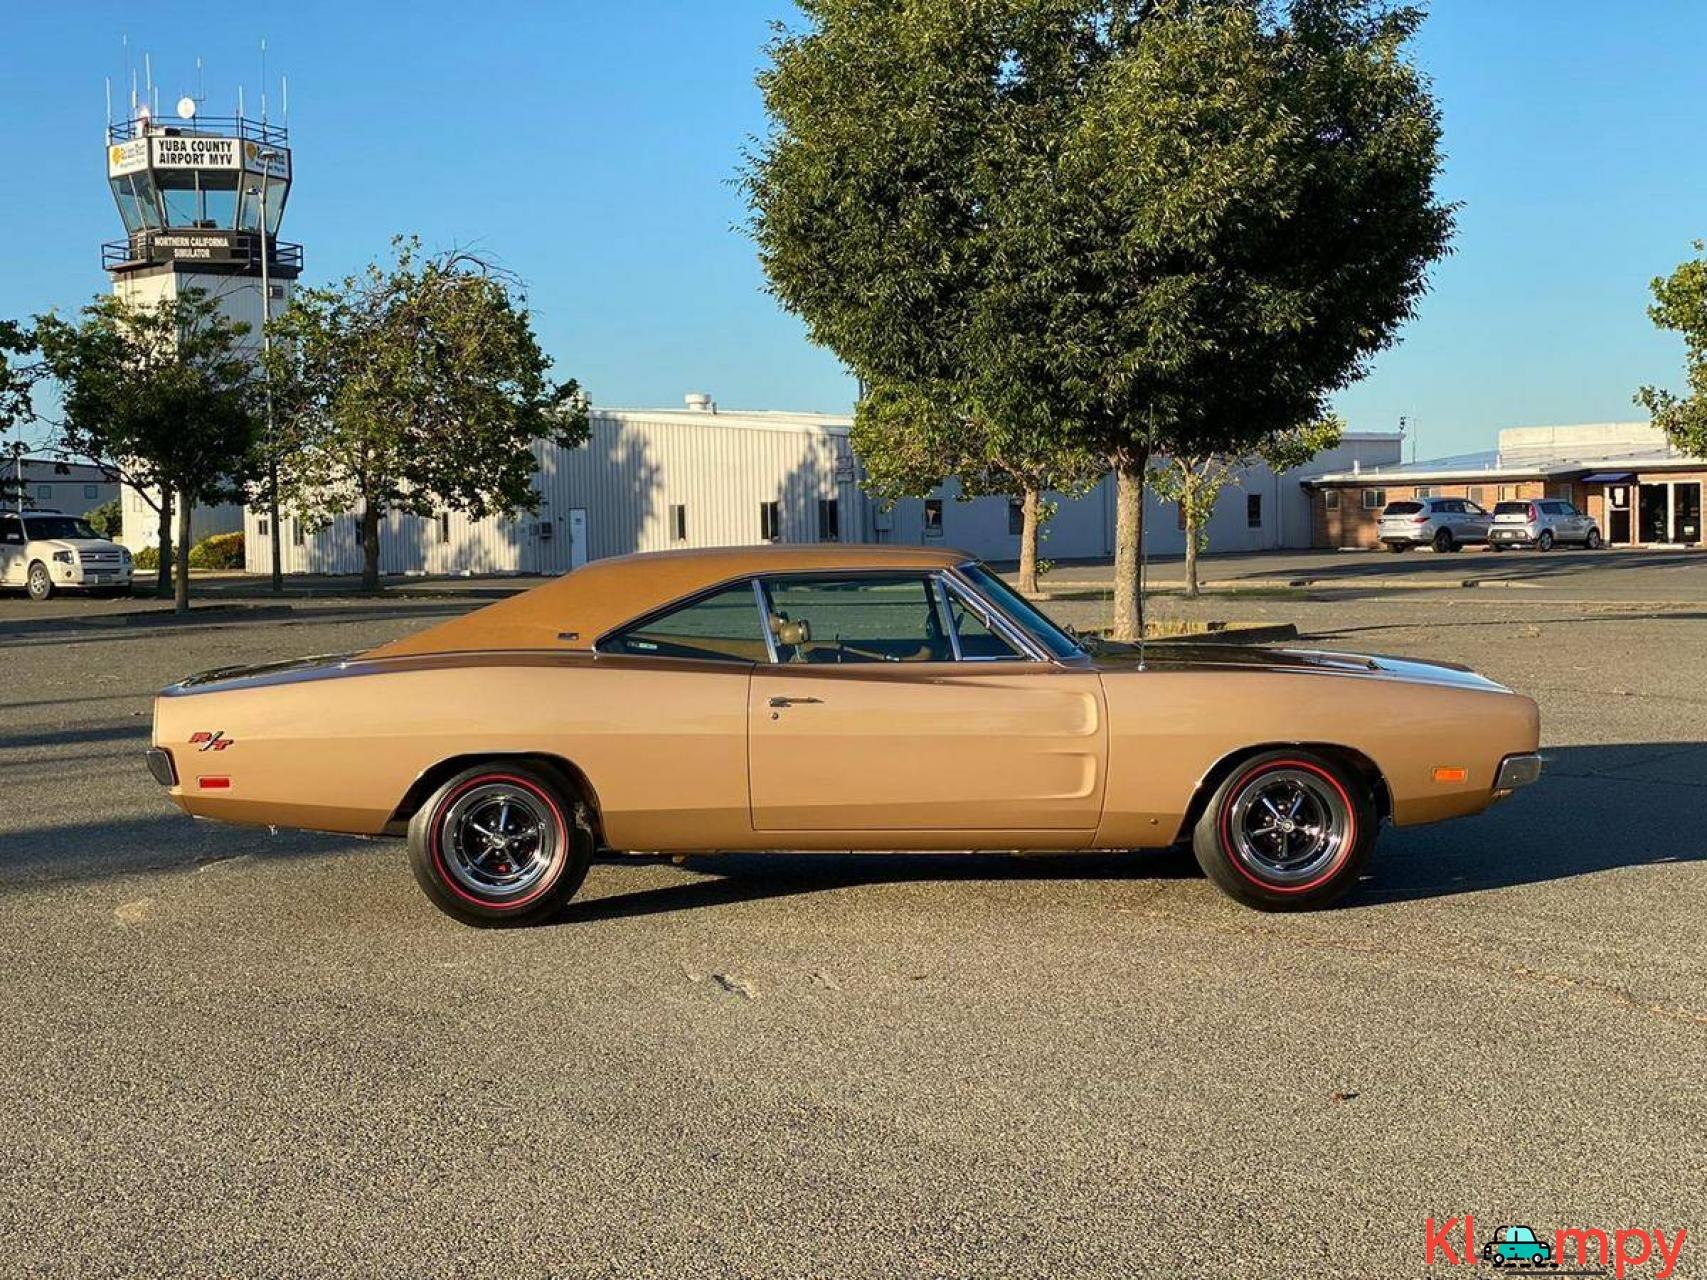 1969 Dodge Charger RT SE 440 375hp High Performance - 8/20